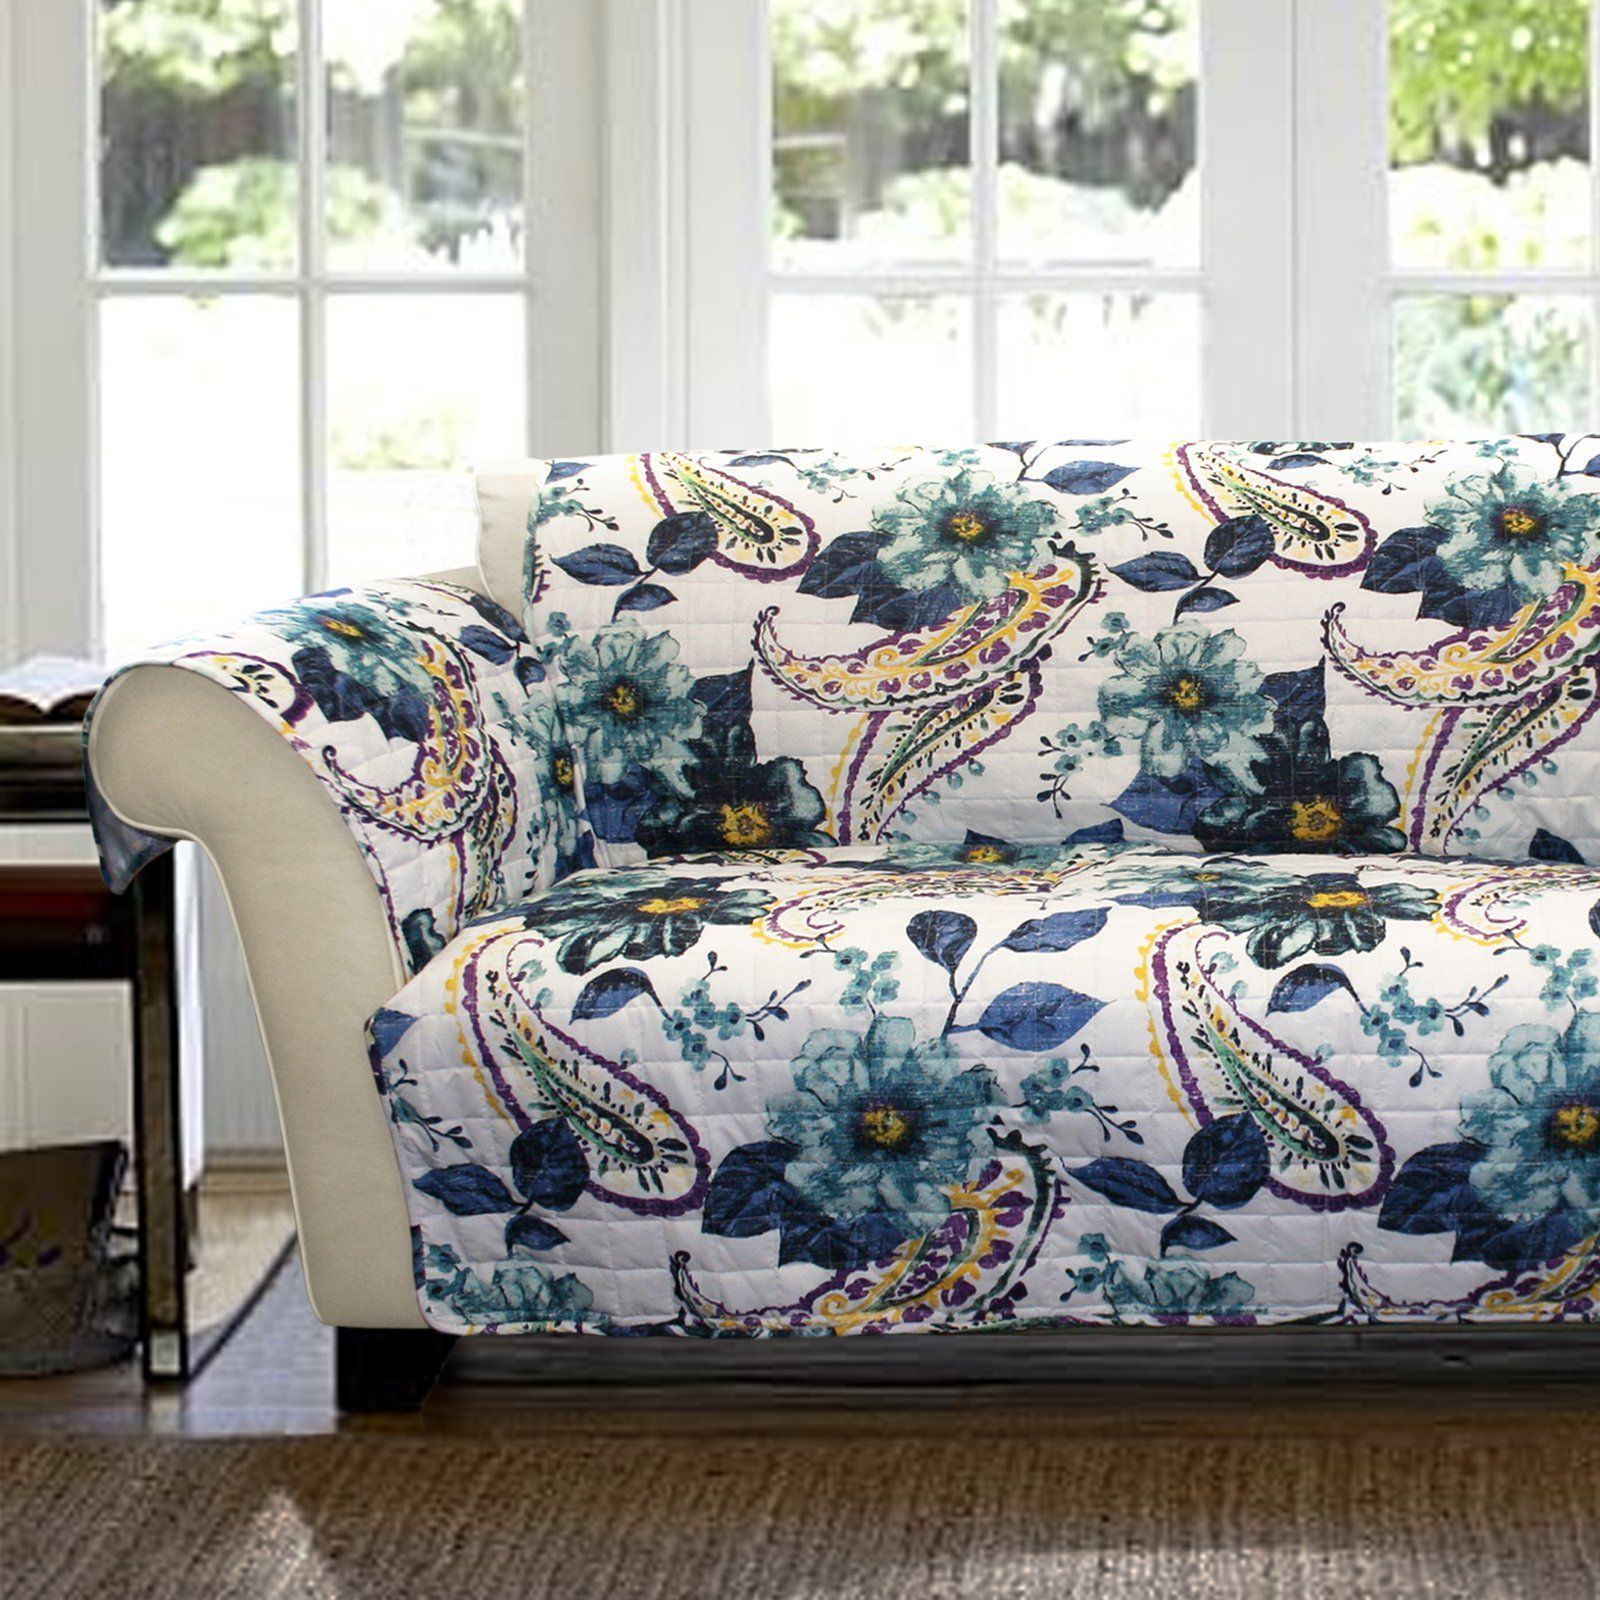 Forever New Floral Paisley Loveseat Protector - C28568P14-000